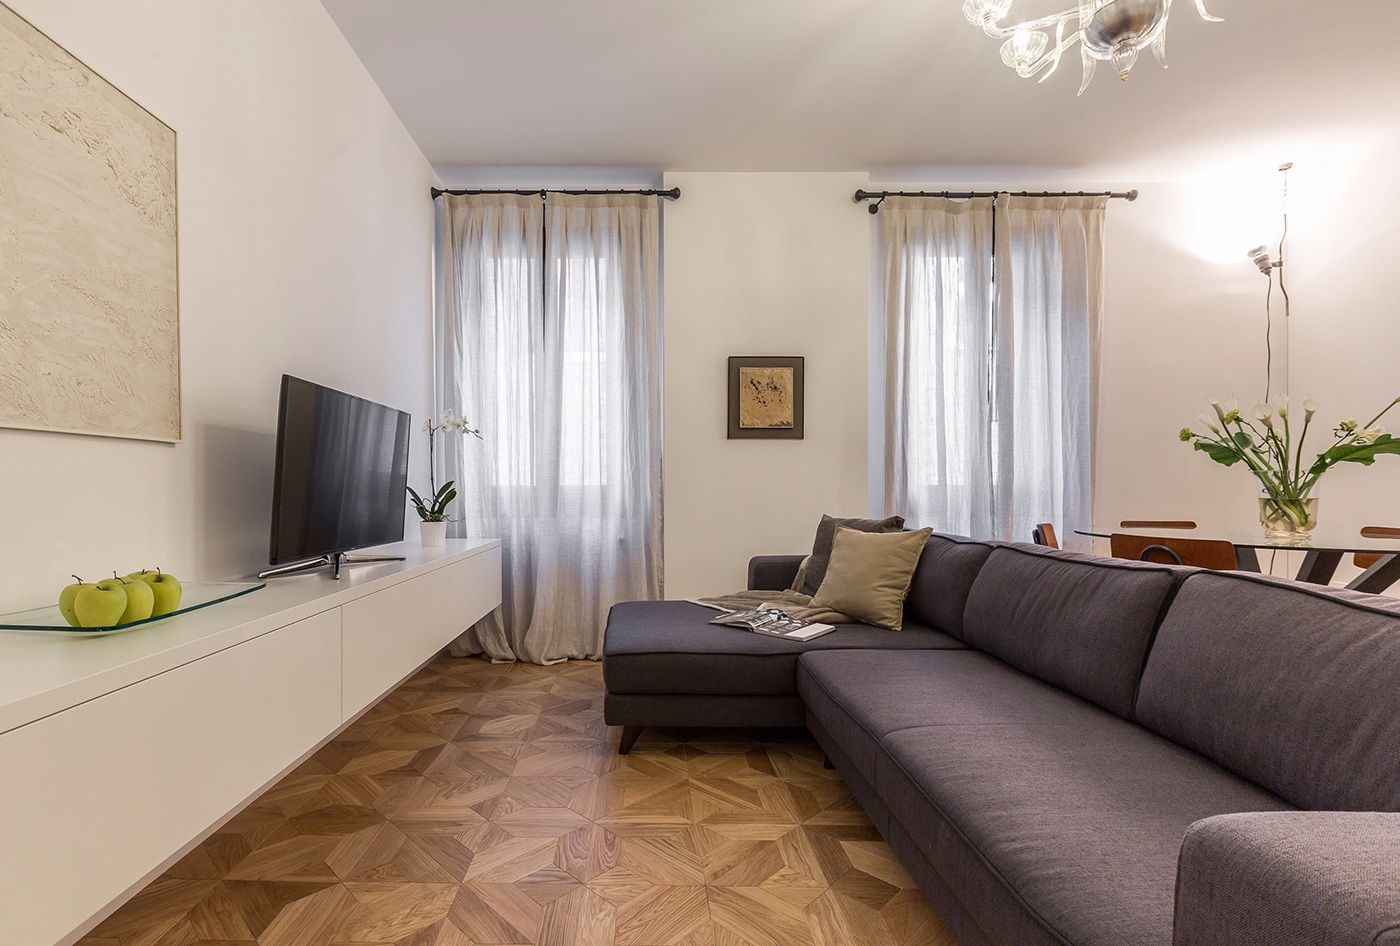 the Aida apartment living room: style and comfort guaranteed